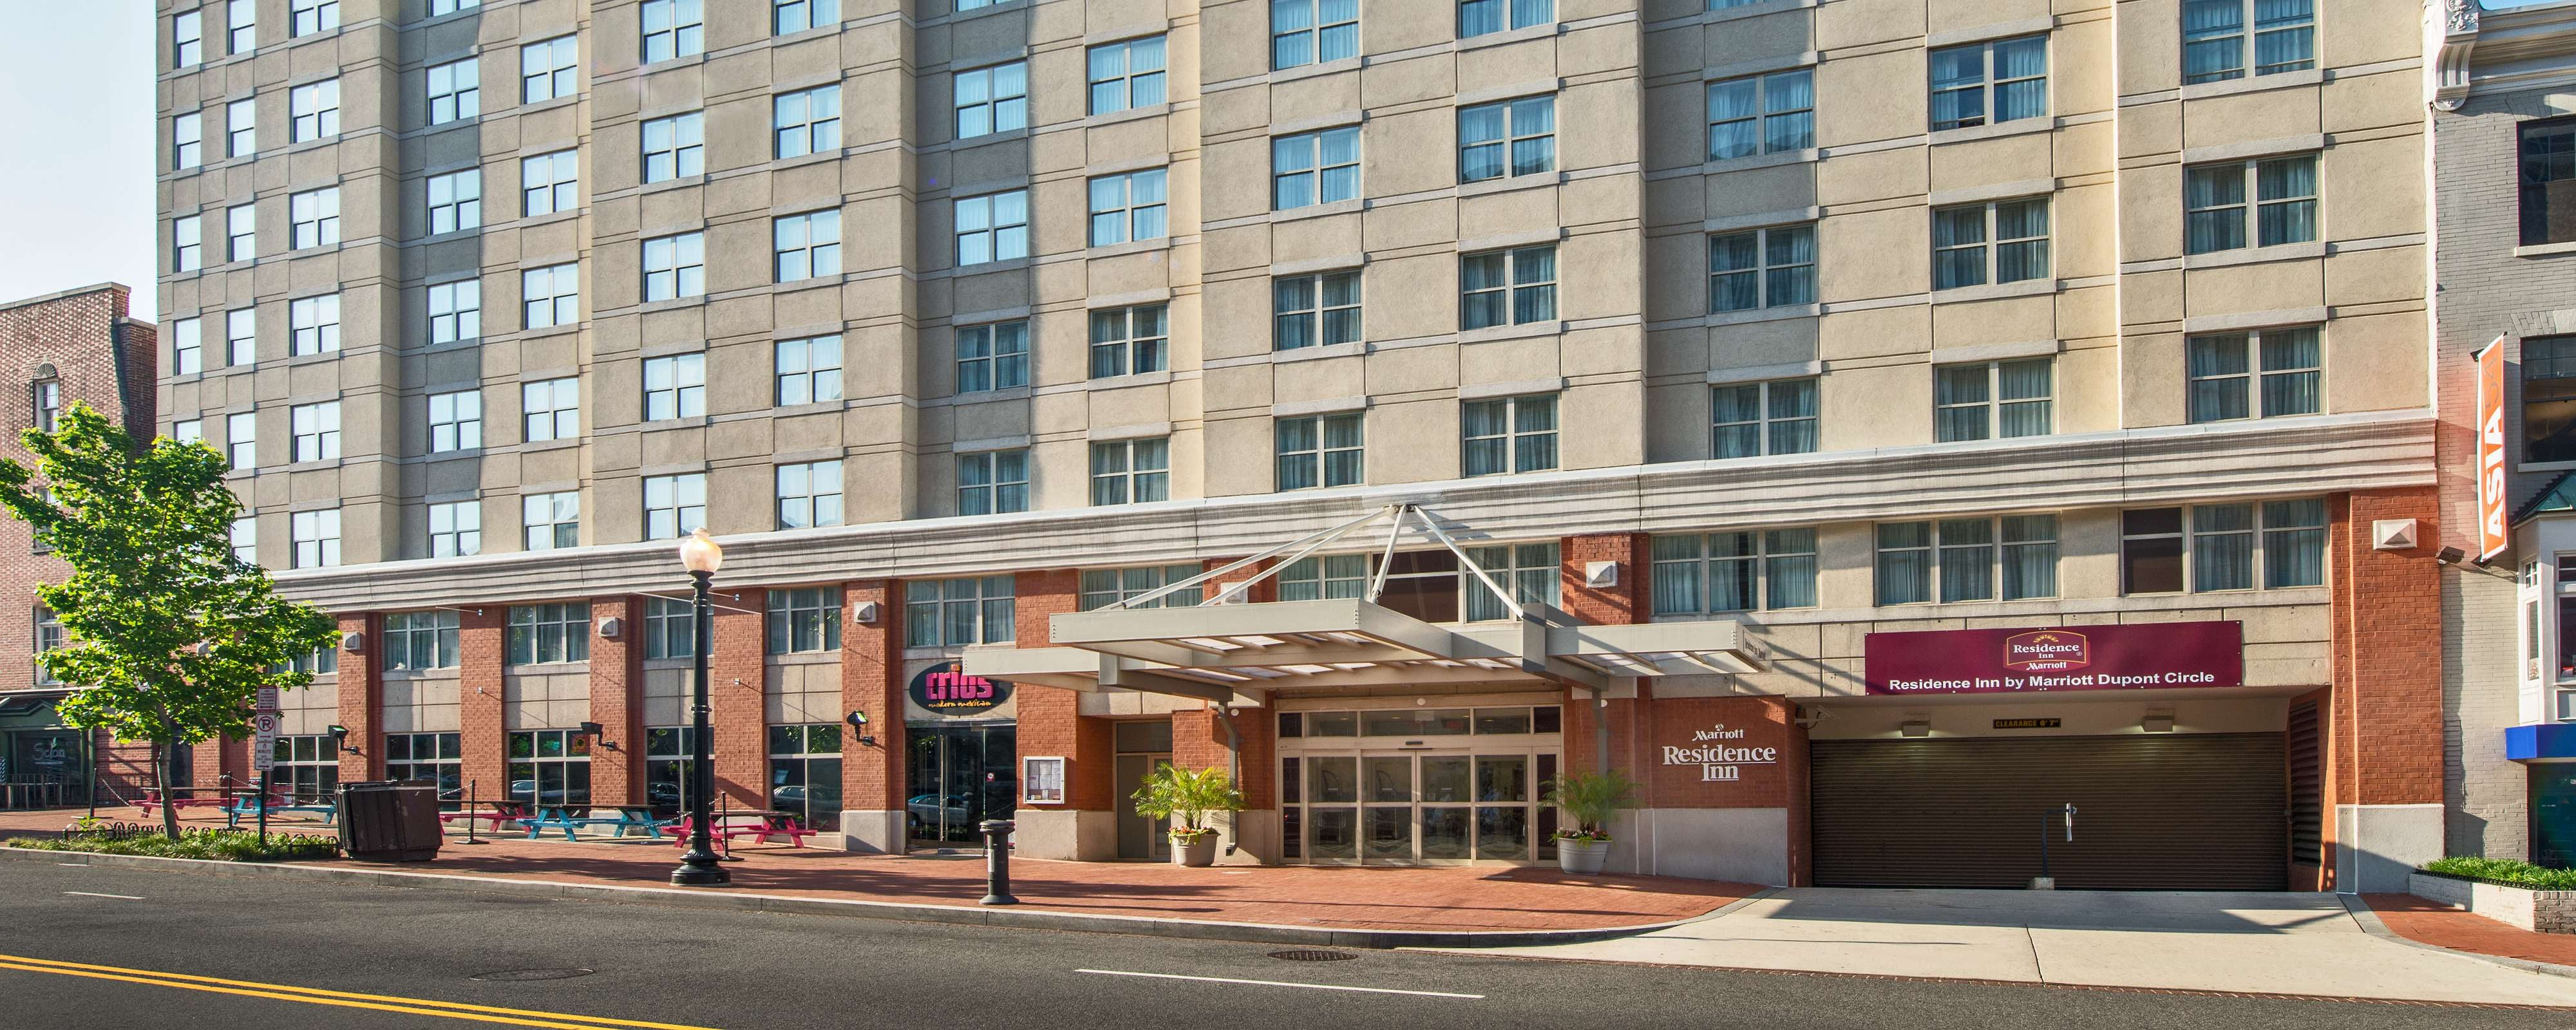 Residence Inn in Washington, D.C.